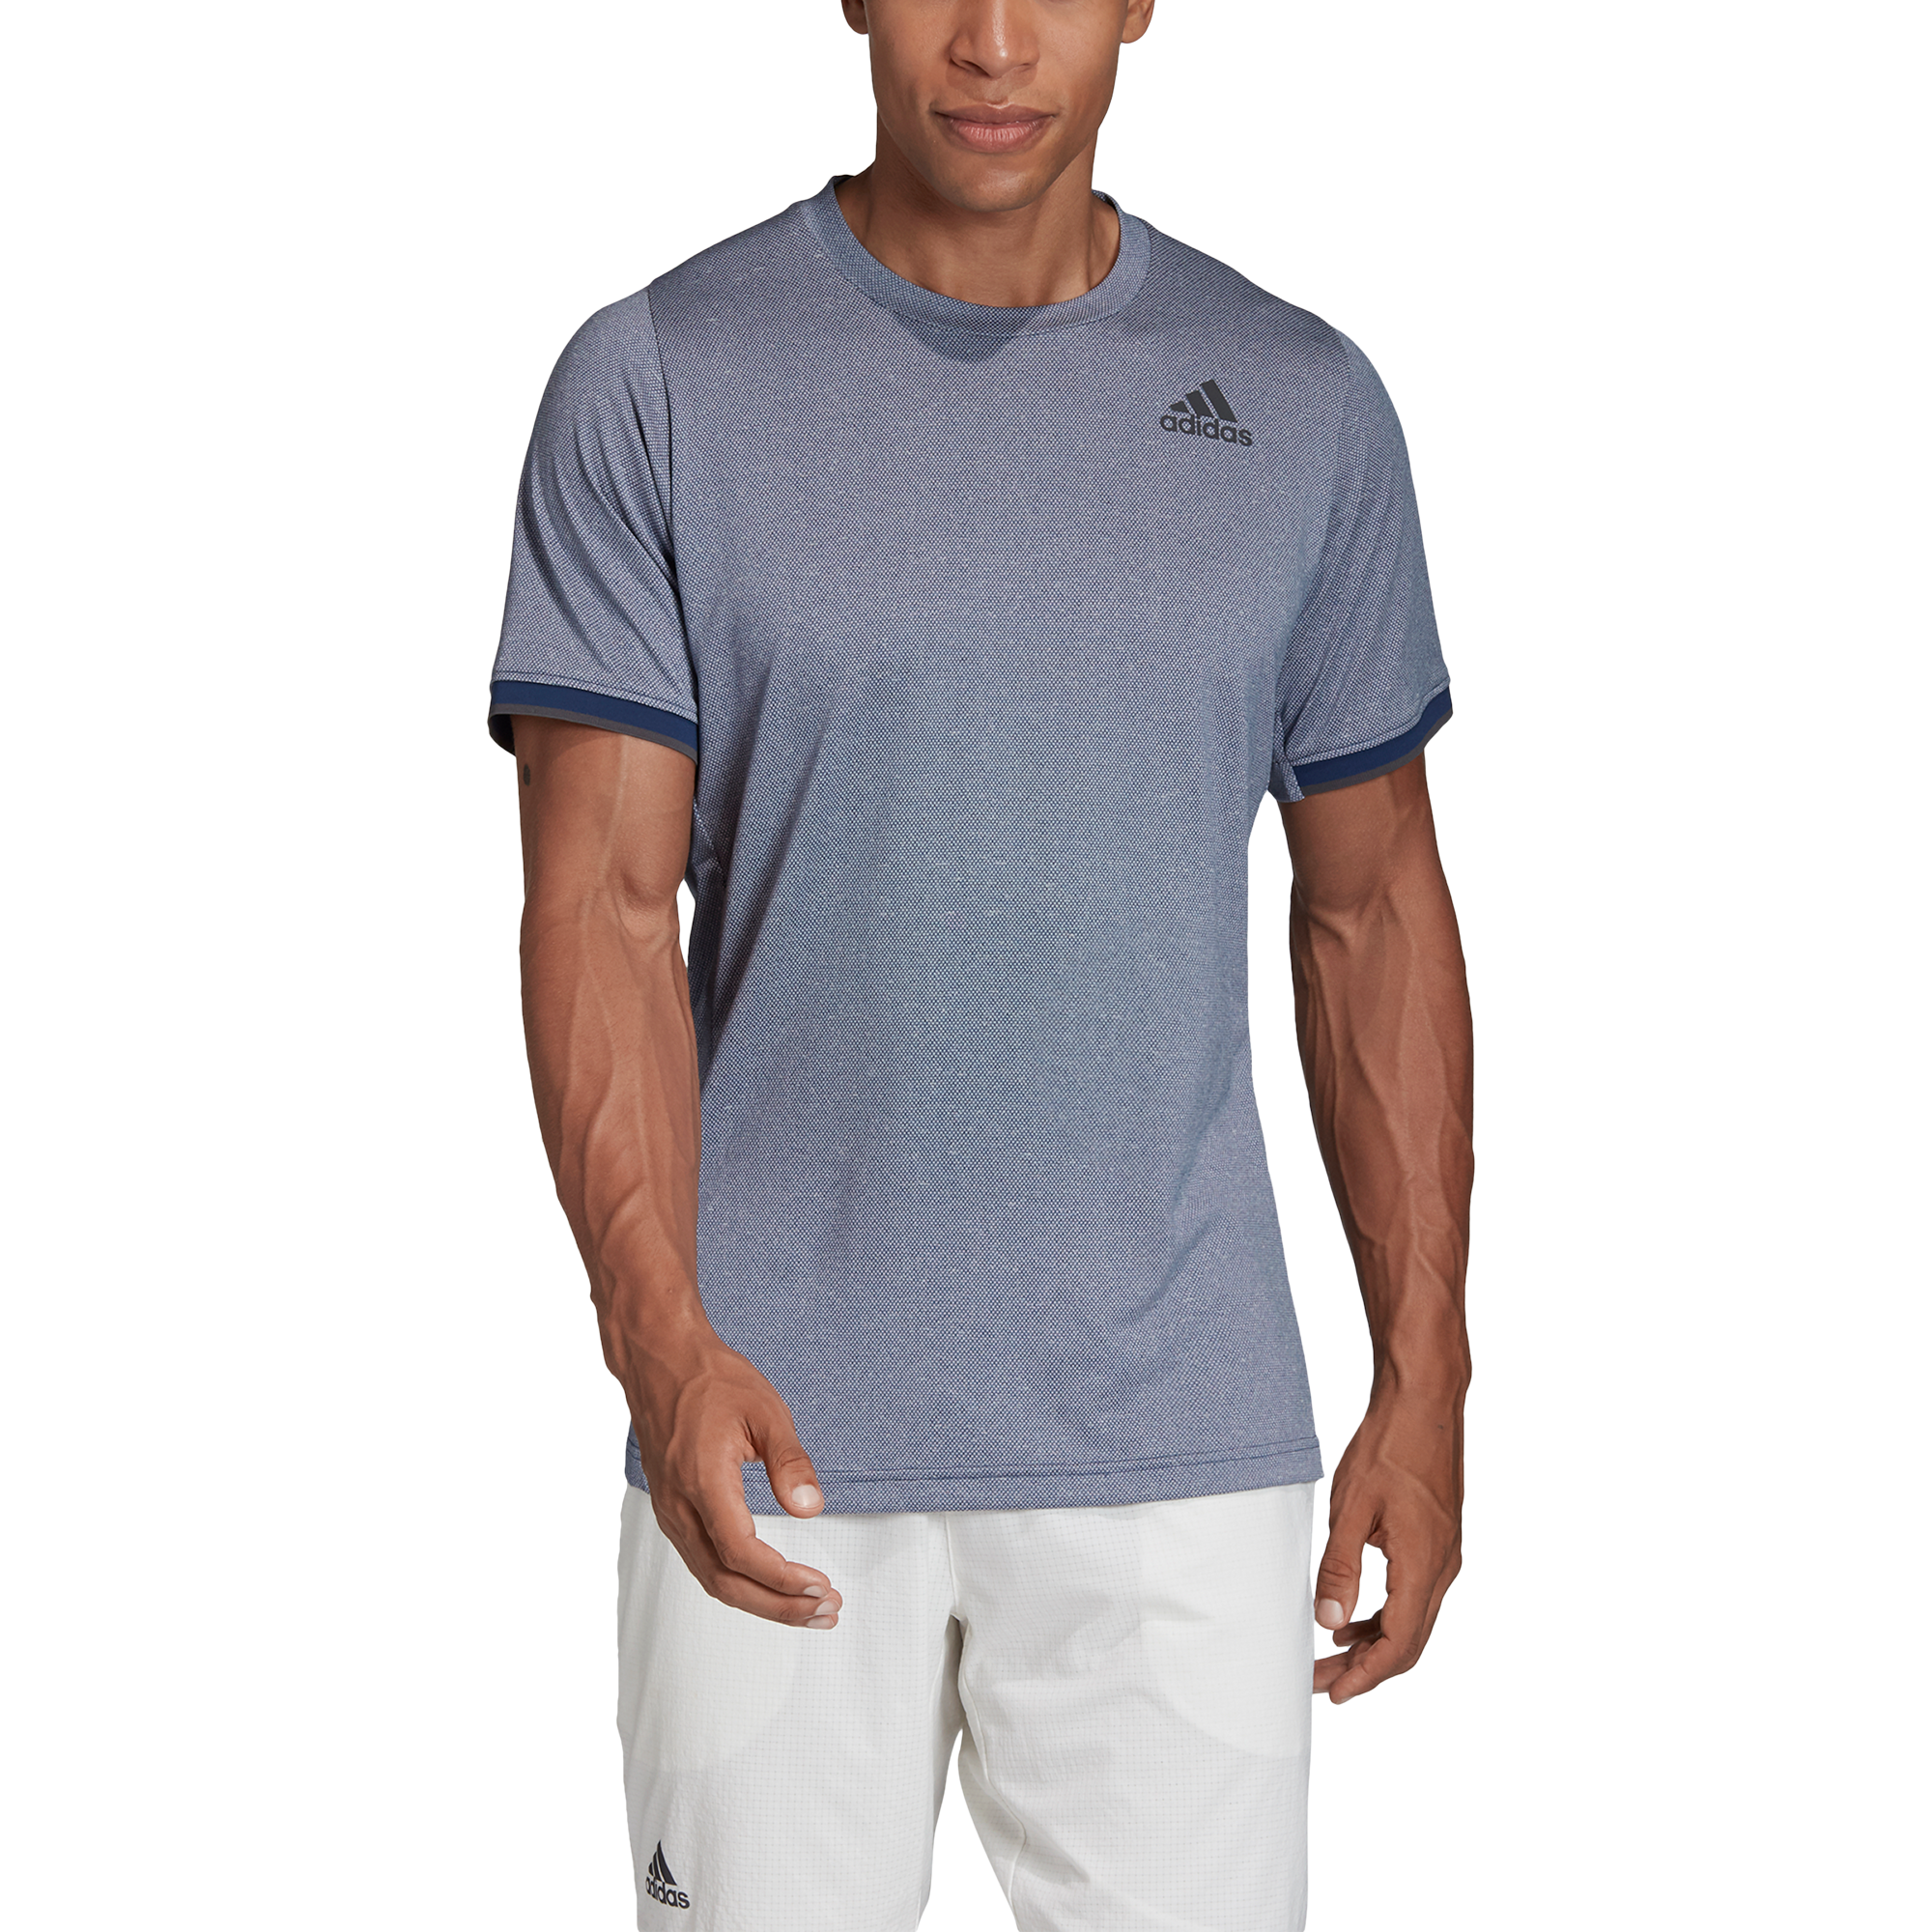 Adidas Men Freelift Tennis Tee Shirt